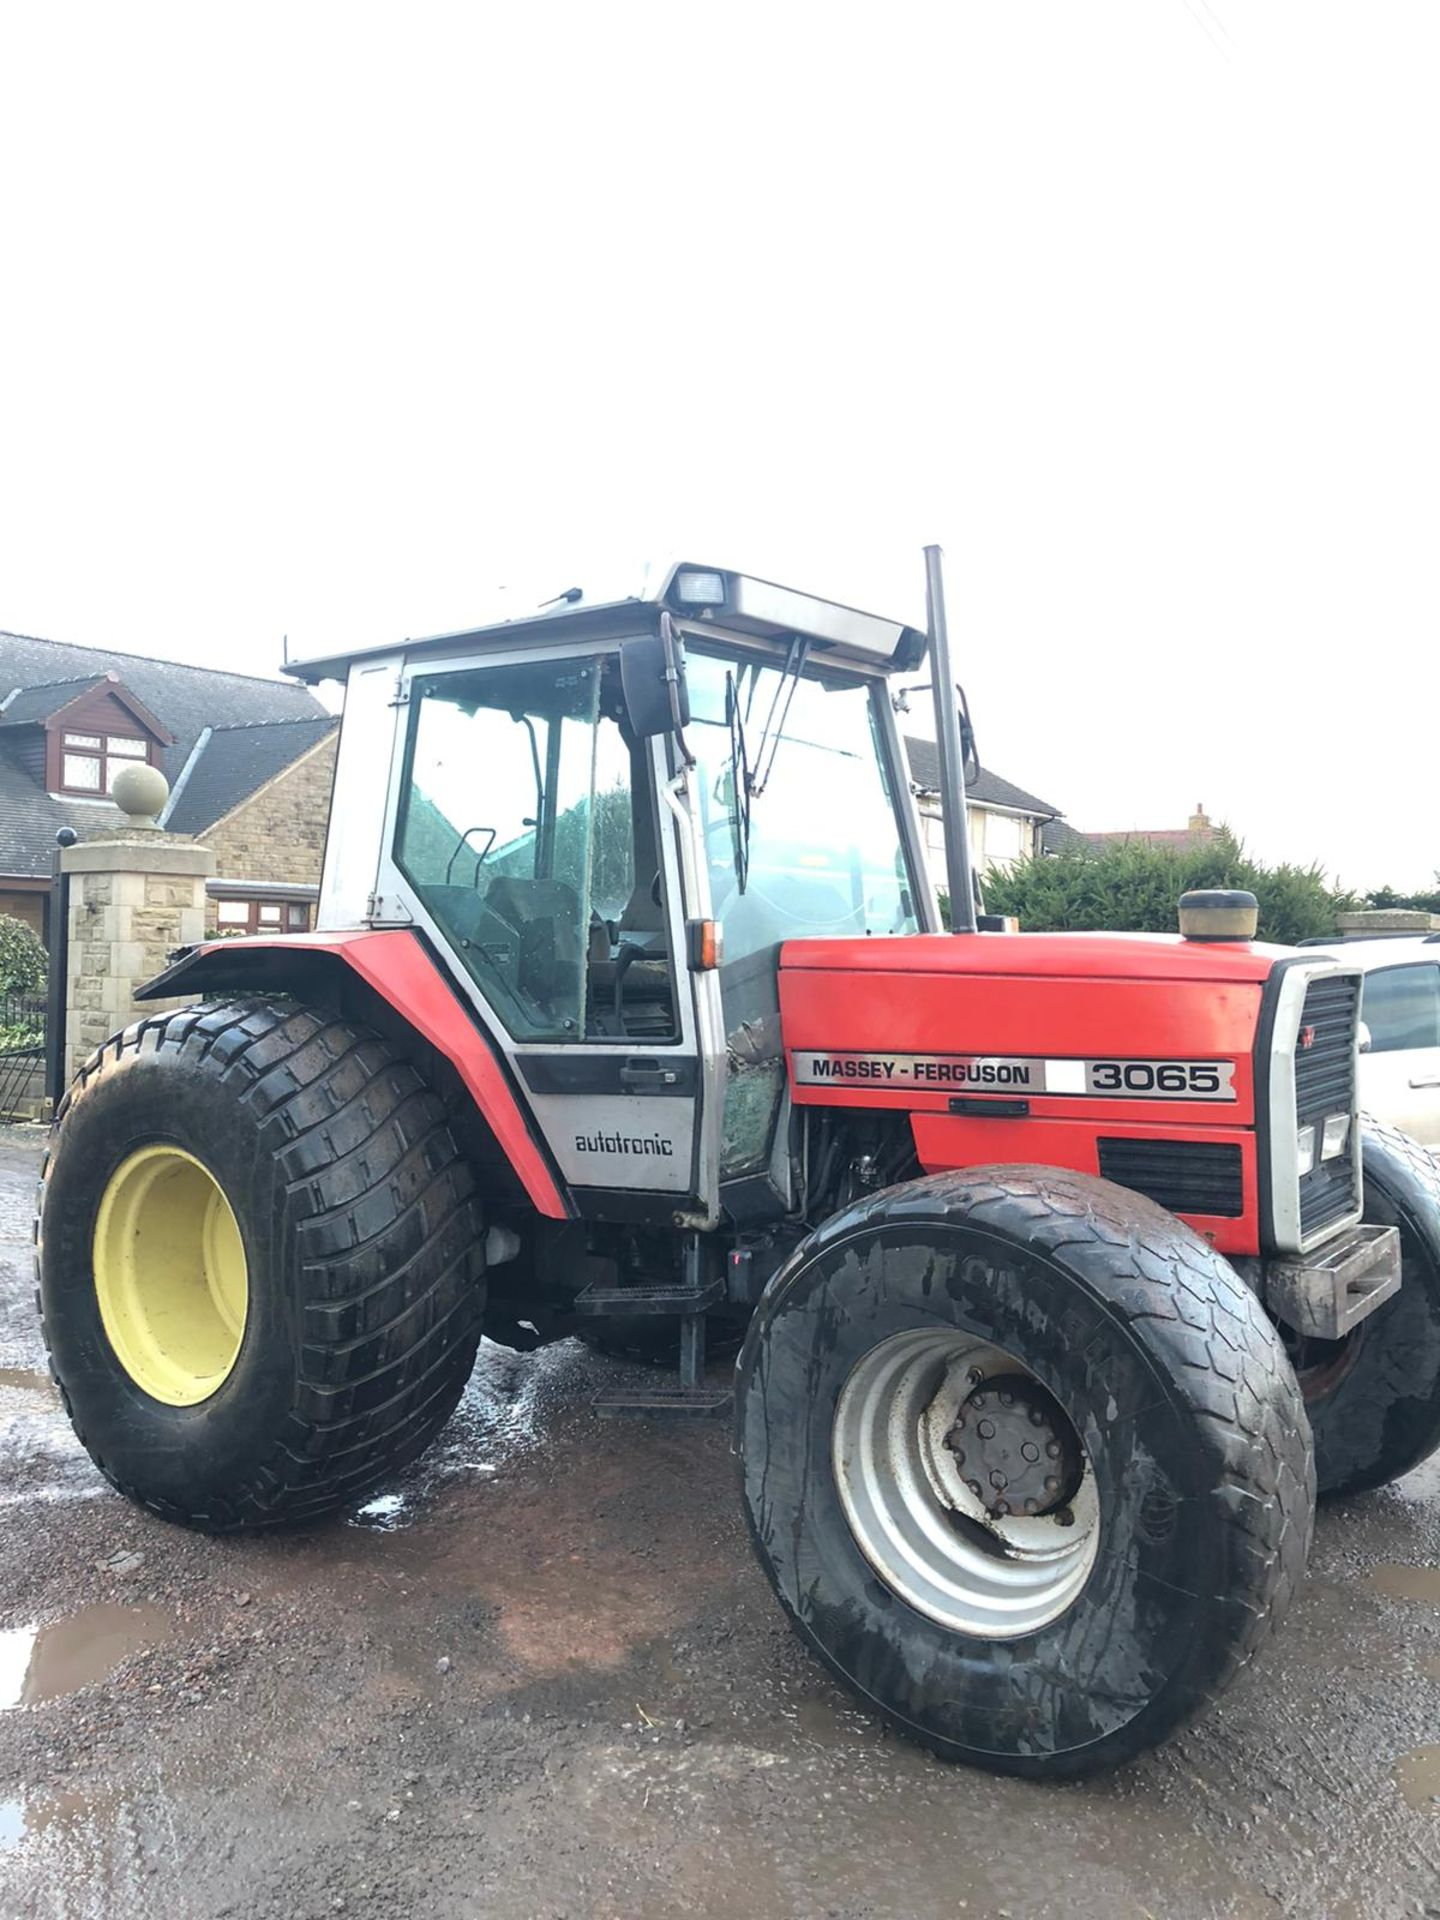 Lot 45 - MASSEY FERGUSON 3065 TRACTOR, RUNS AND WORKS, 3 POINT LINKAGE, YEAR 1992, ROAD REGISTERED *PLUS VAT*